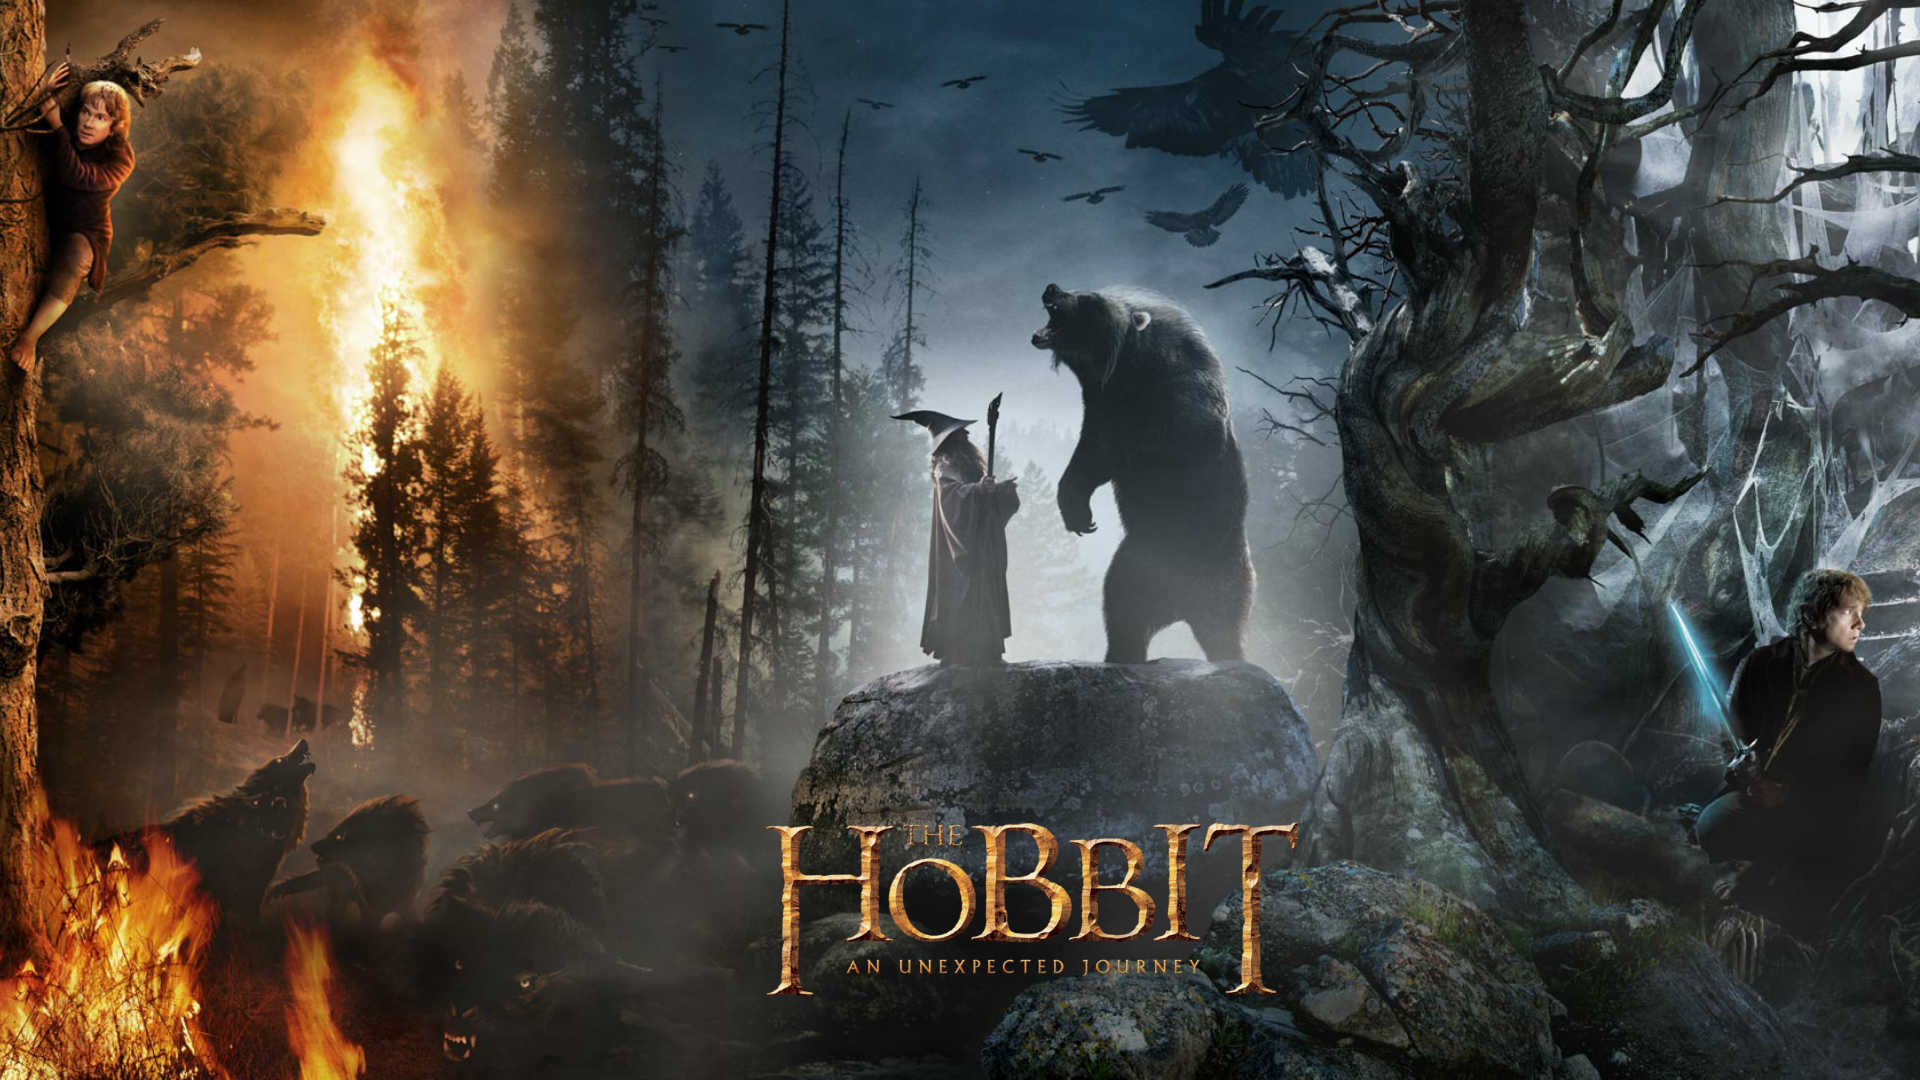 1920x1080 The Hobbit Gandalf and bear desktop PC and Mac wallpaper 1920x1080